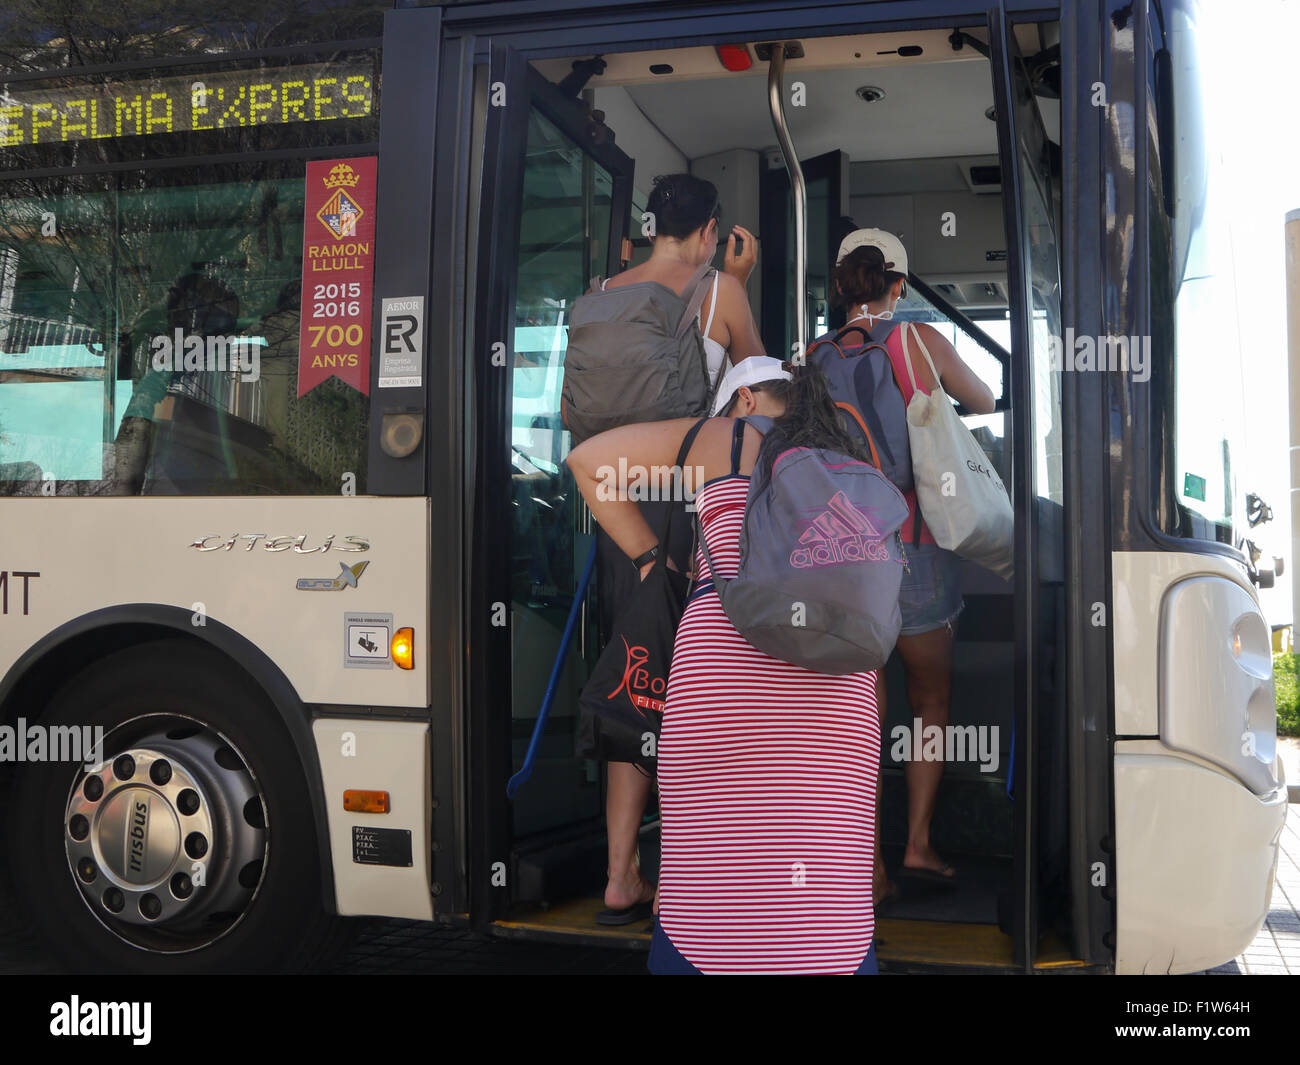 Passengers boarding the Palma express bus in El Arenal, Mallorca, Spain. - Stock Image